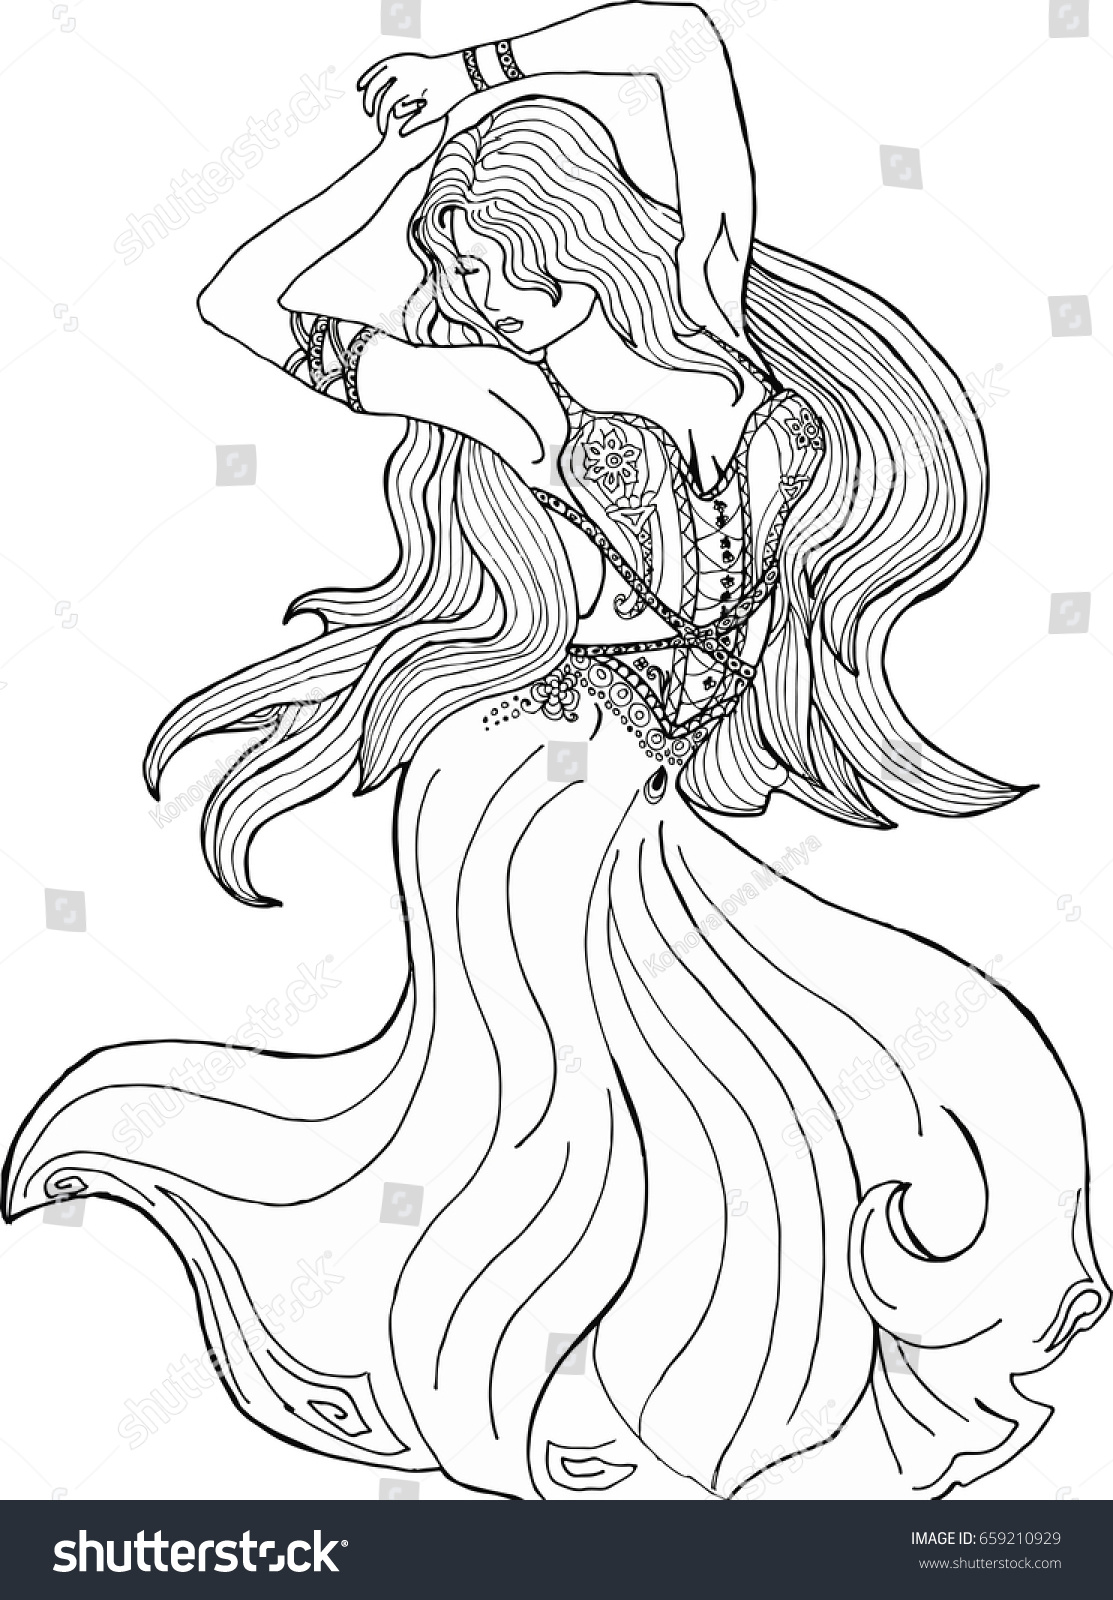 Coloring Pages Adults Girl Dress Dancing Stock Vector 659210929 ...